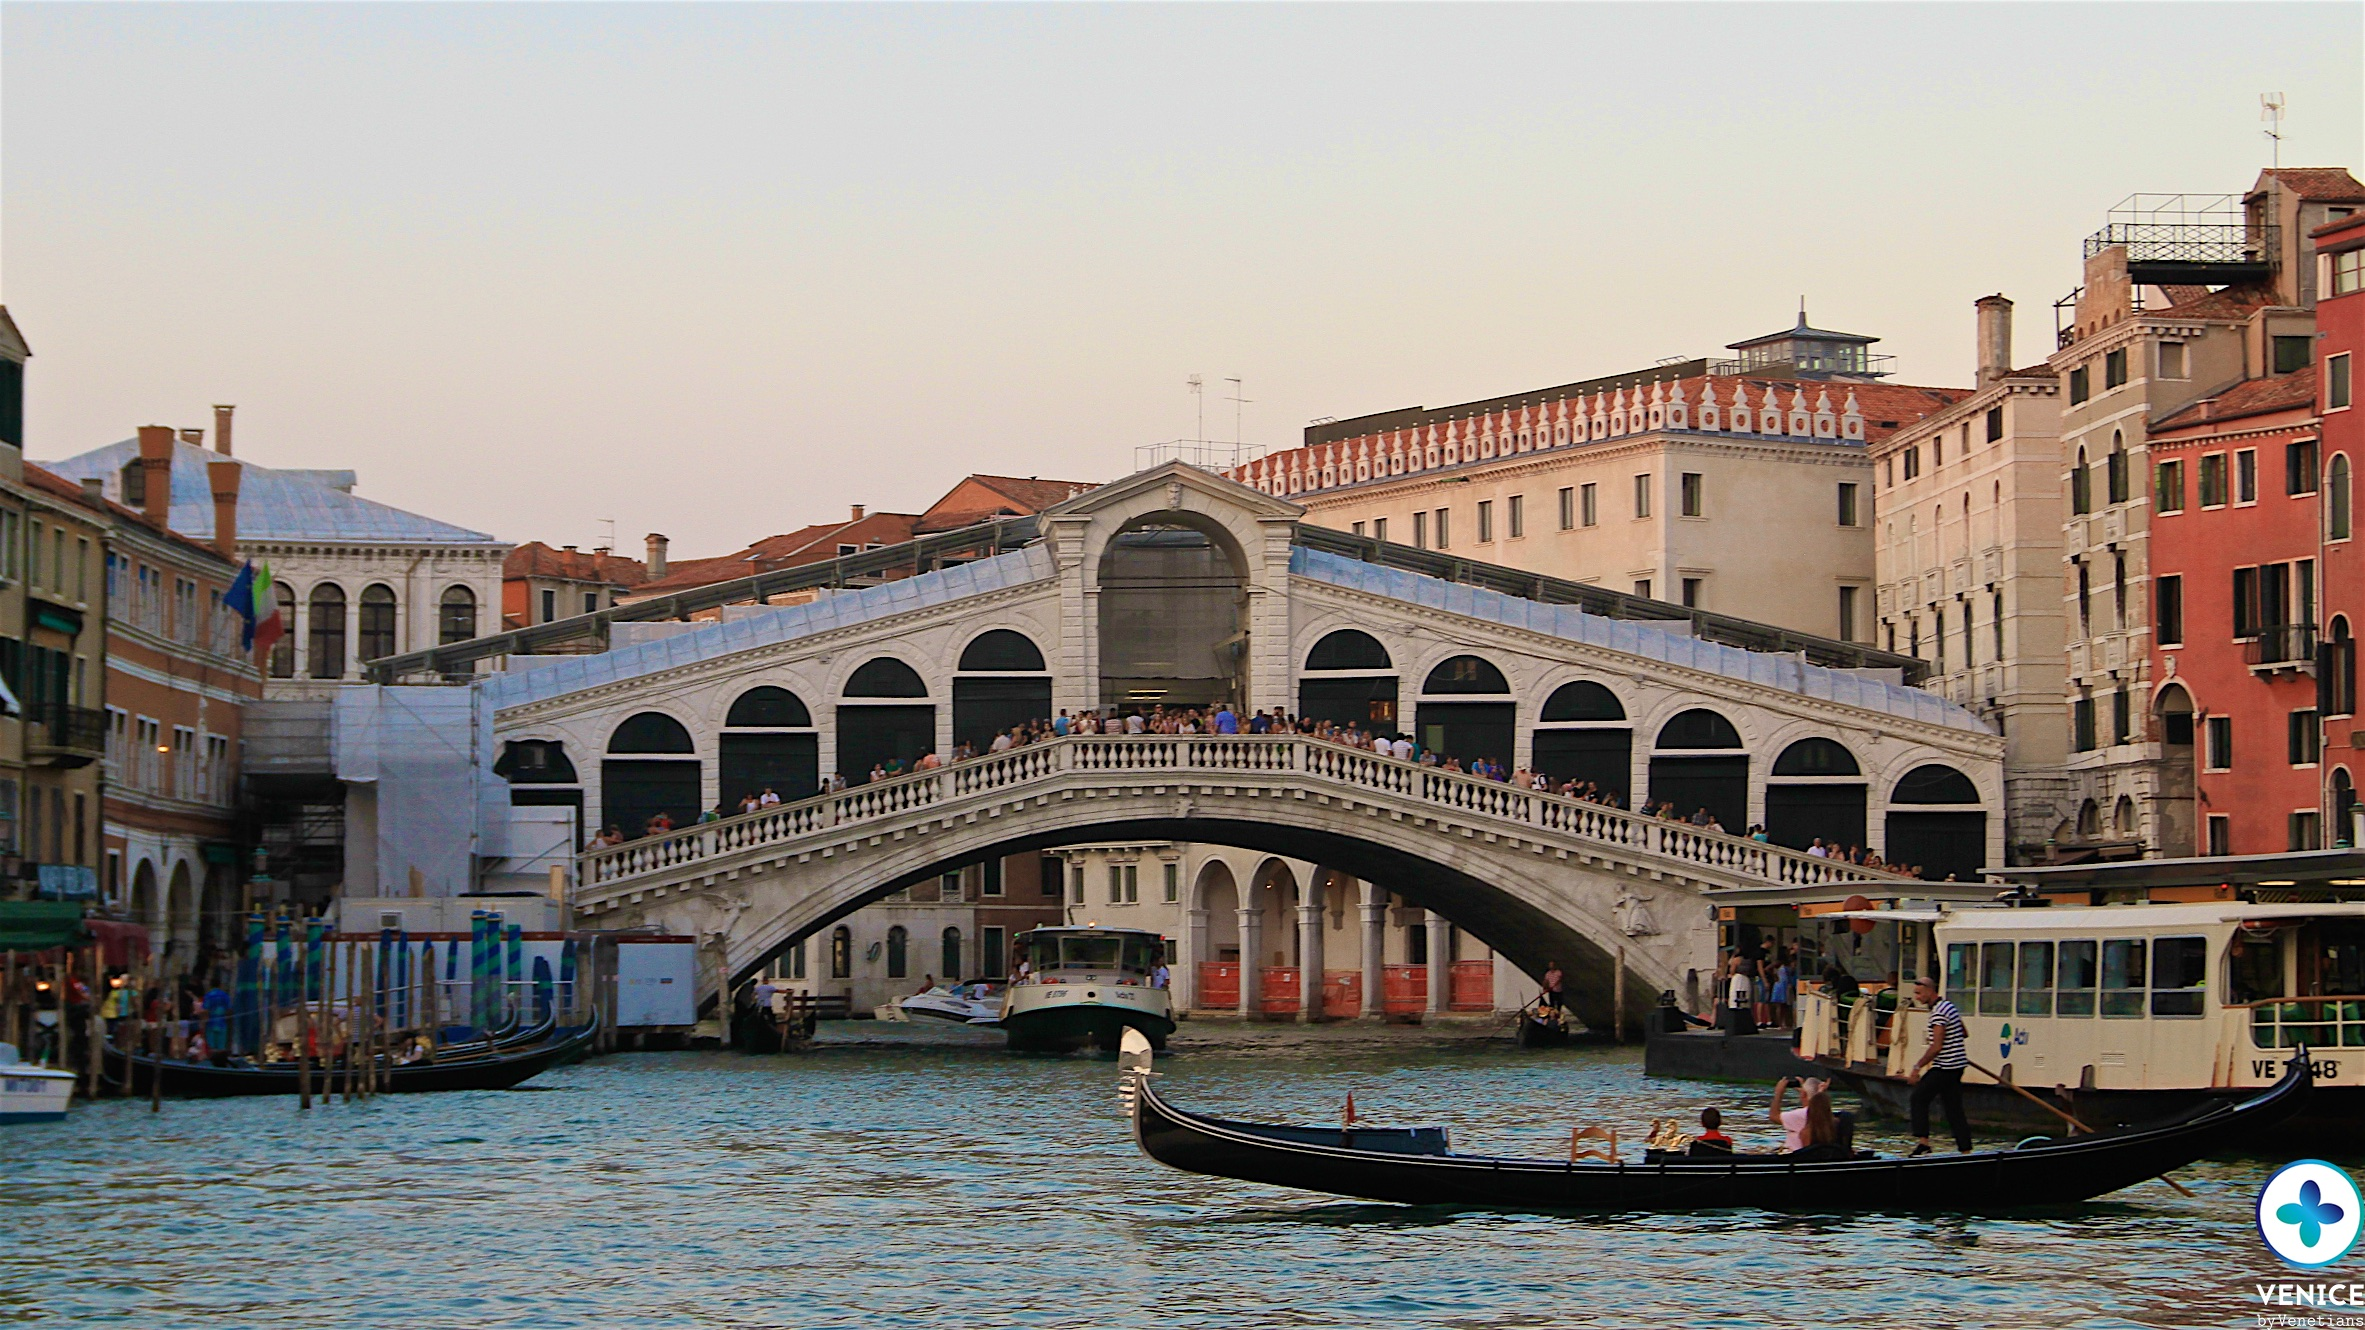 10 PLACES TO VISIT IN VENICE - Venice by Venetians